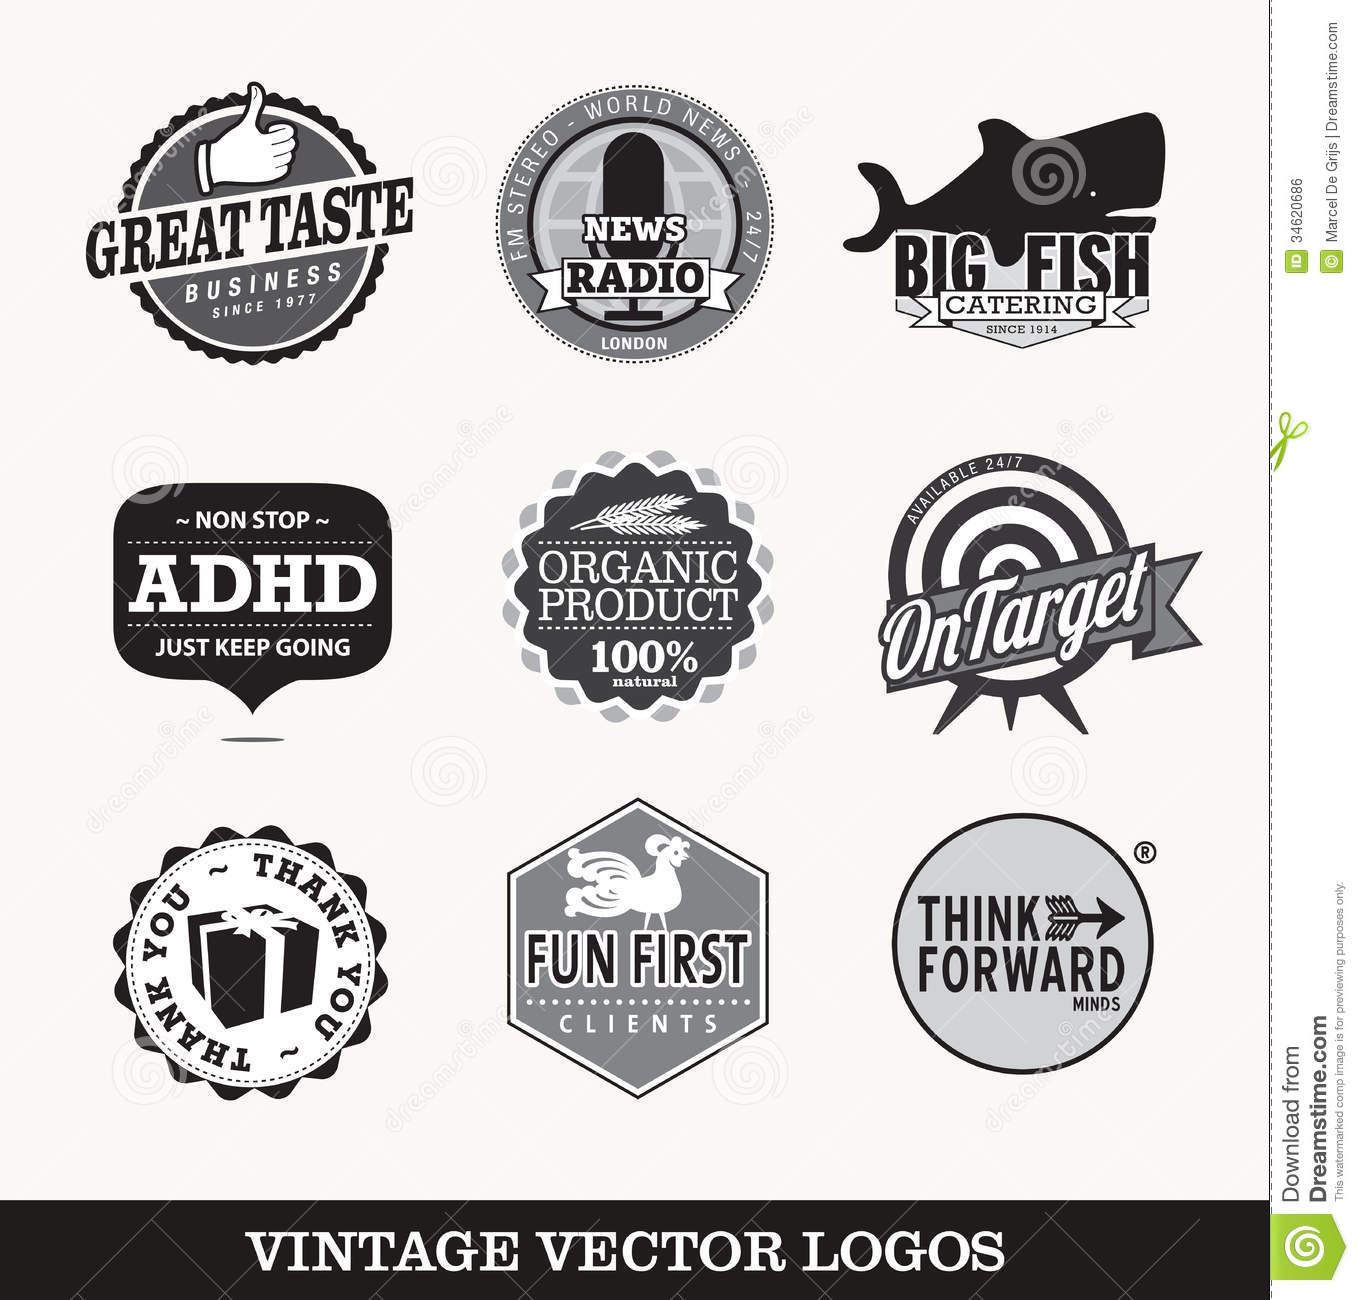 Old retro logos image. giftshop, catering, restaurant, radio station ...